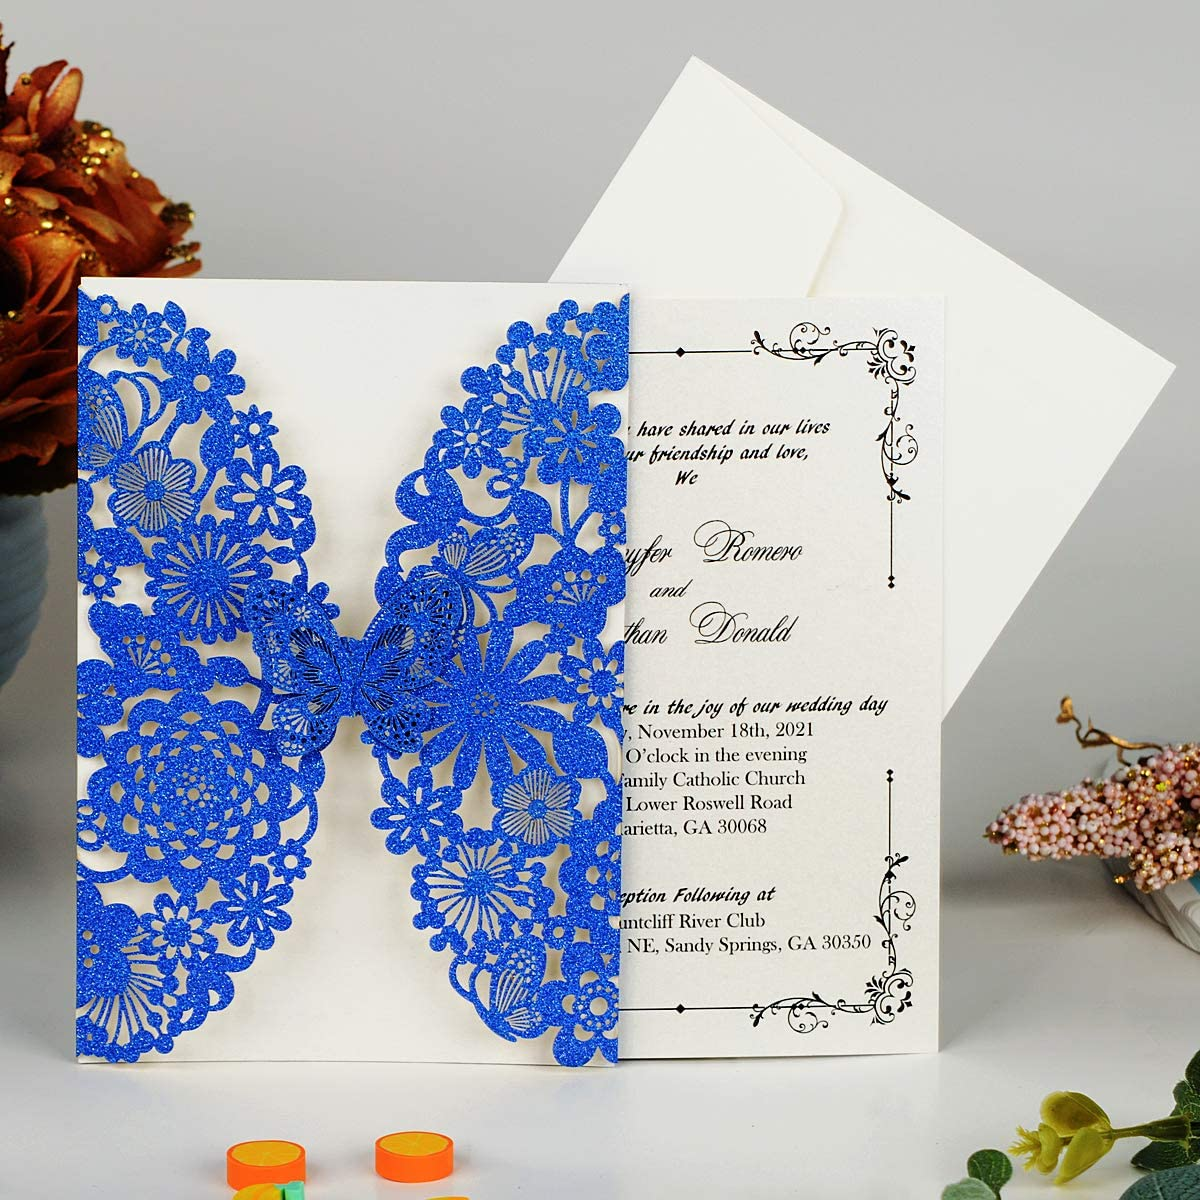 Amazon.com: Hosmsua 50x Blue Laser Cut Lace Flora Wedding Invitation Cards  with Butterfly and with Customized Printed for Bridal Shower Engagement  Birthday Graduation Party (Royal Blue Glitter): Health & Personal Care